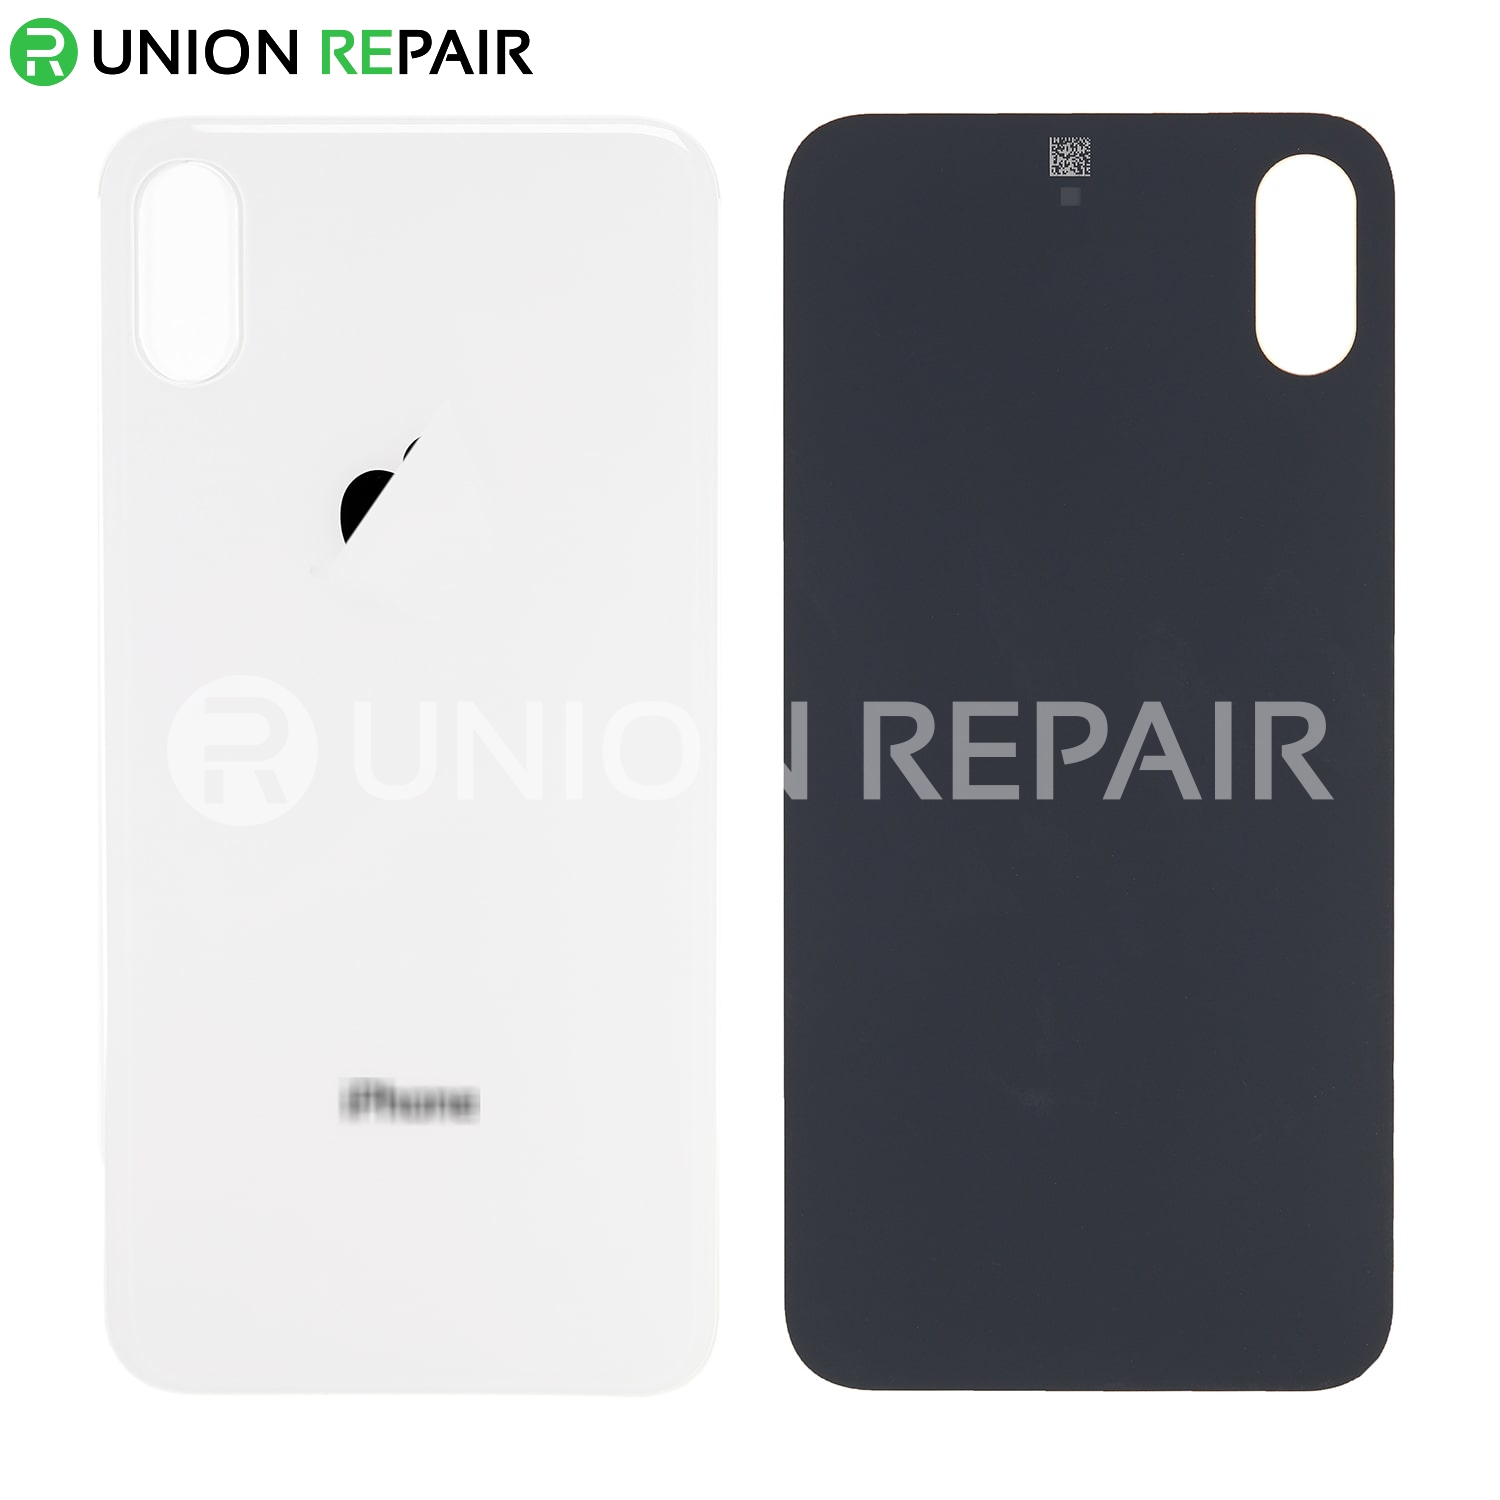 Replacement for iPhone Xs Back Cover - Silver